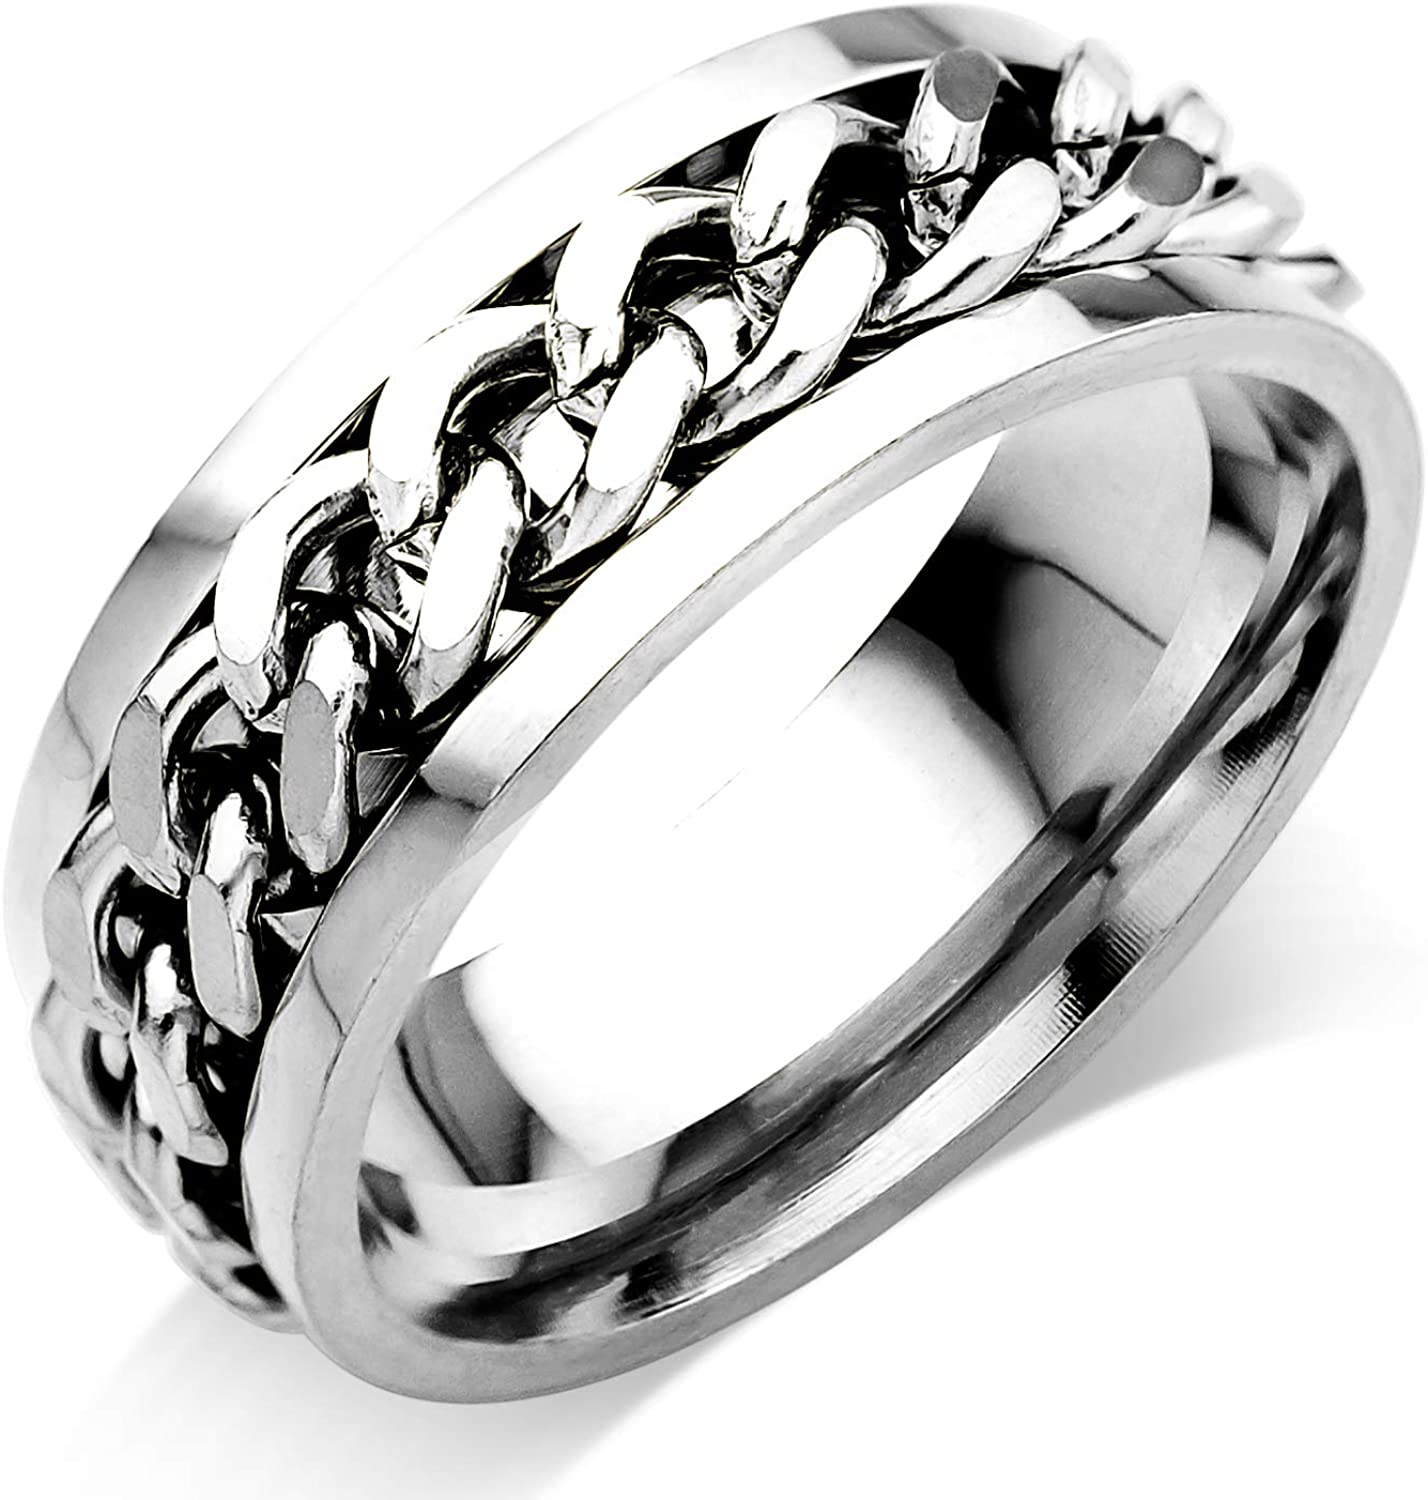 555Jewelry Stainless Steel Chain Link Unisex Edgy Fashion Wide Spinner Band Ring